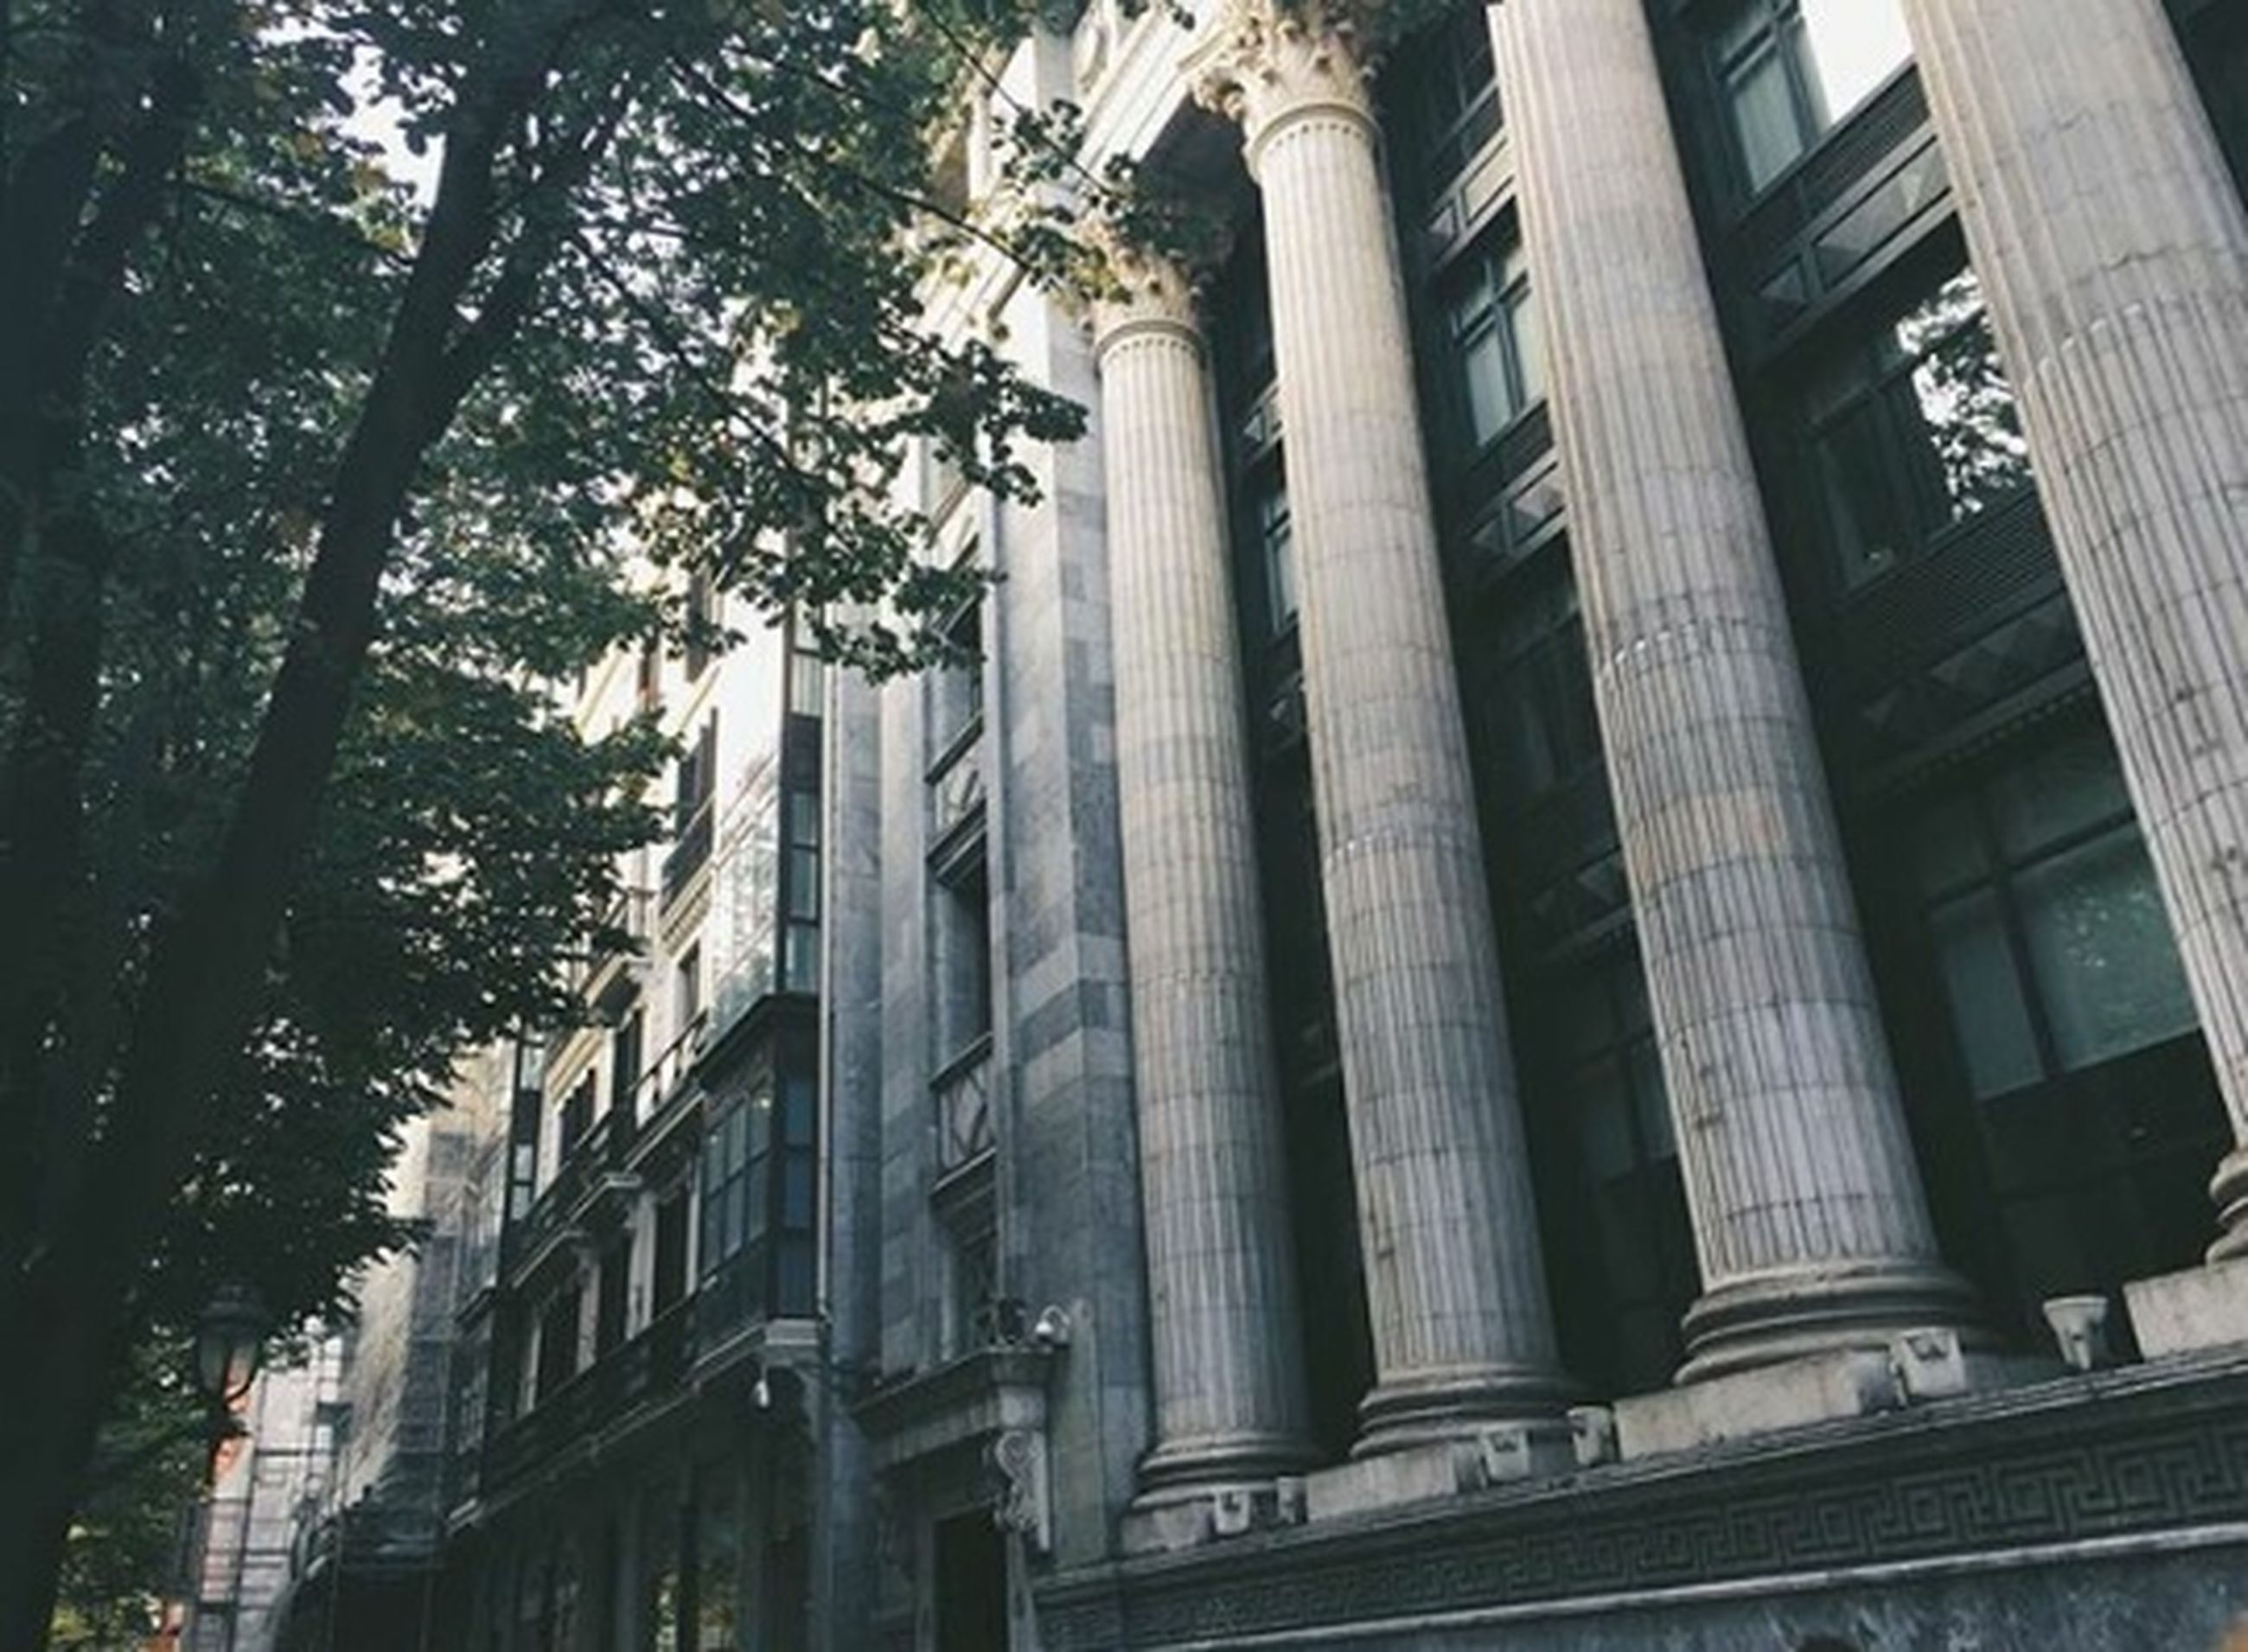 architecture, building exterior, built structure, low angle view, tree, building, window, city, architectural column, day, outdoors, no people, history, facade, architectural feature, statue, travel destinations, sky, sculpture, residential building